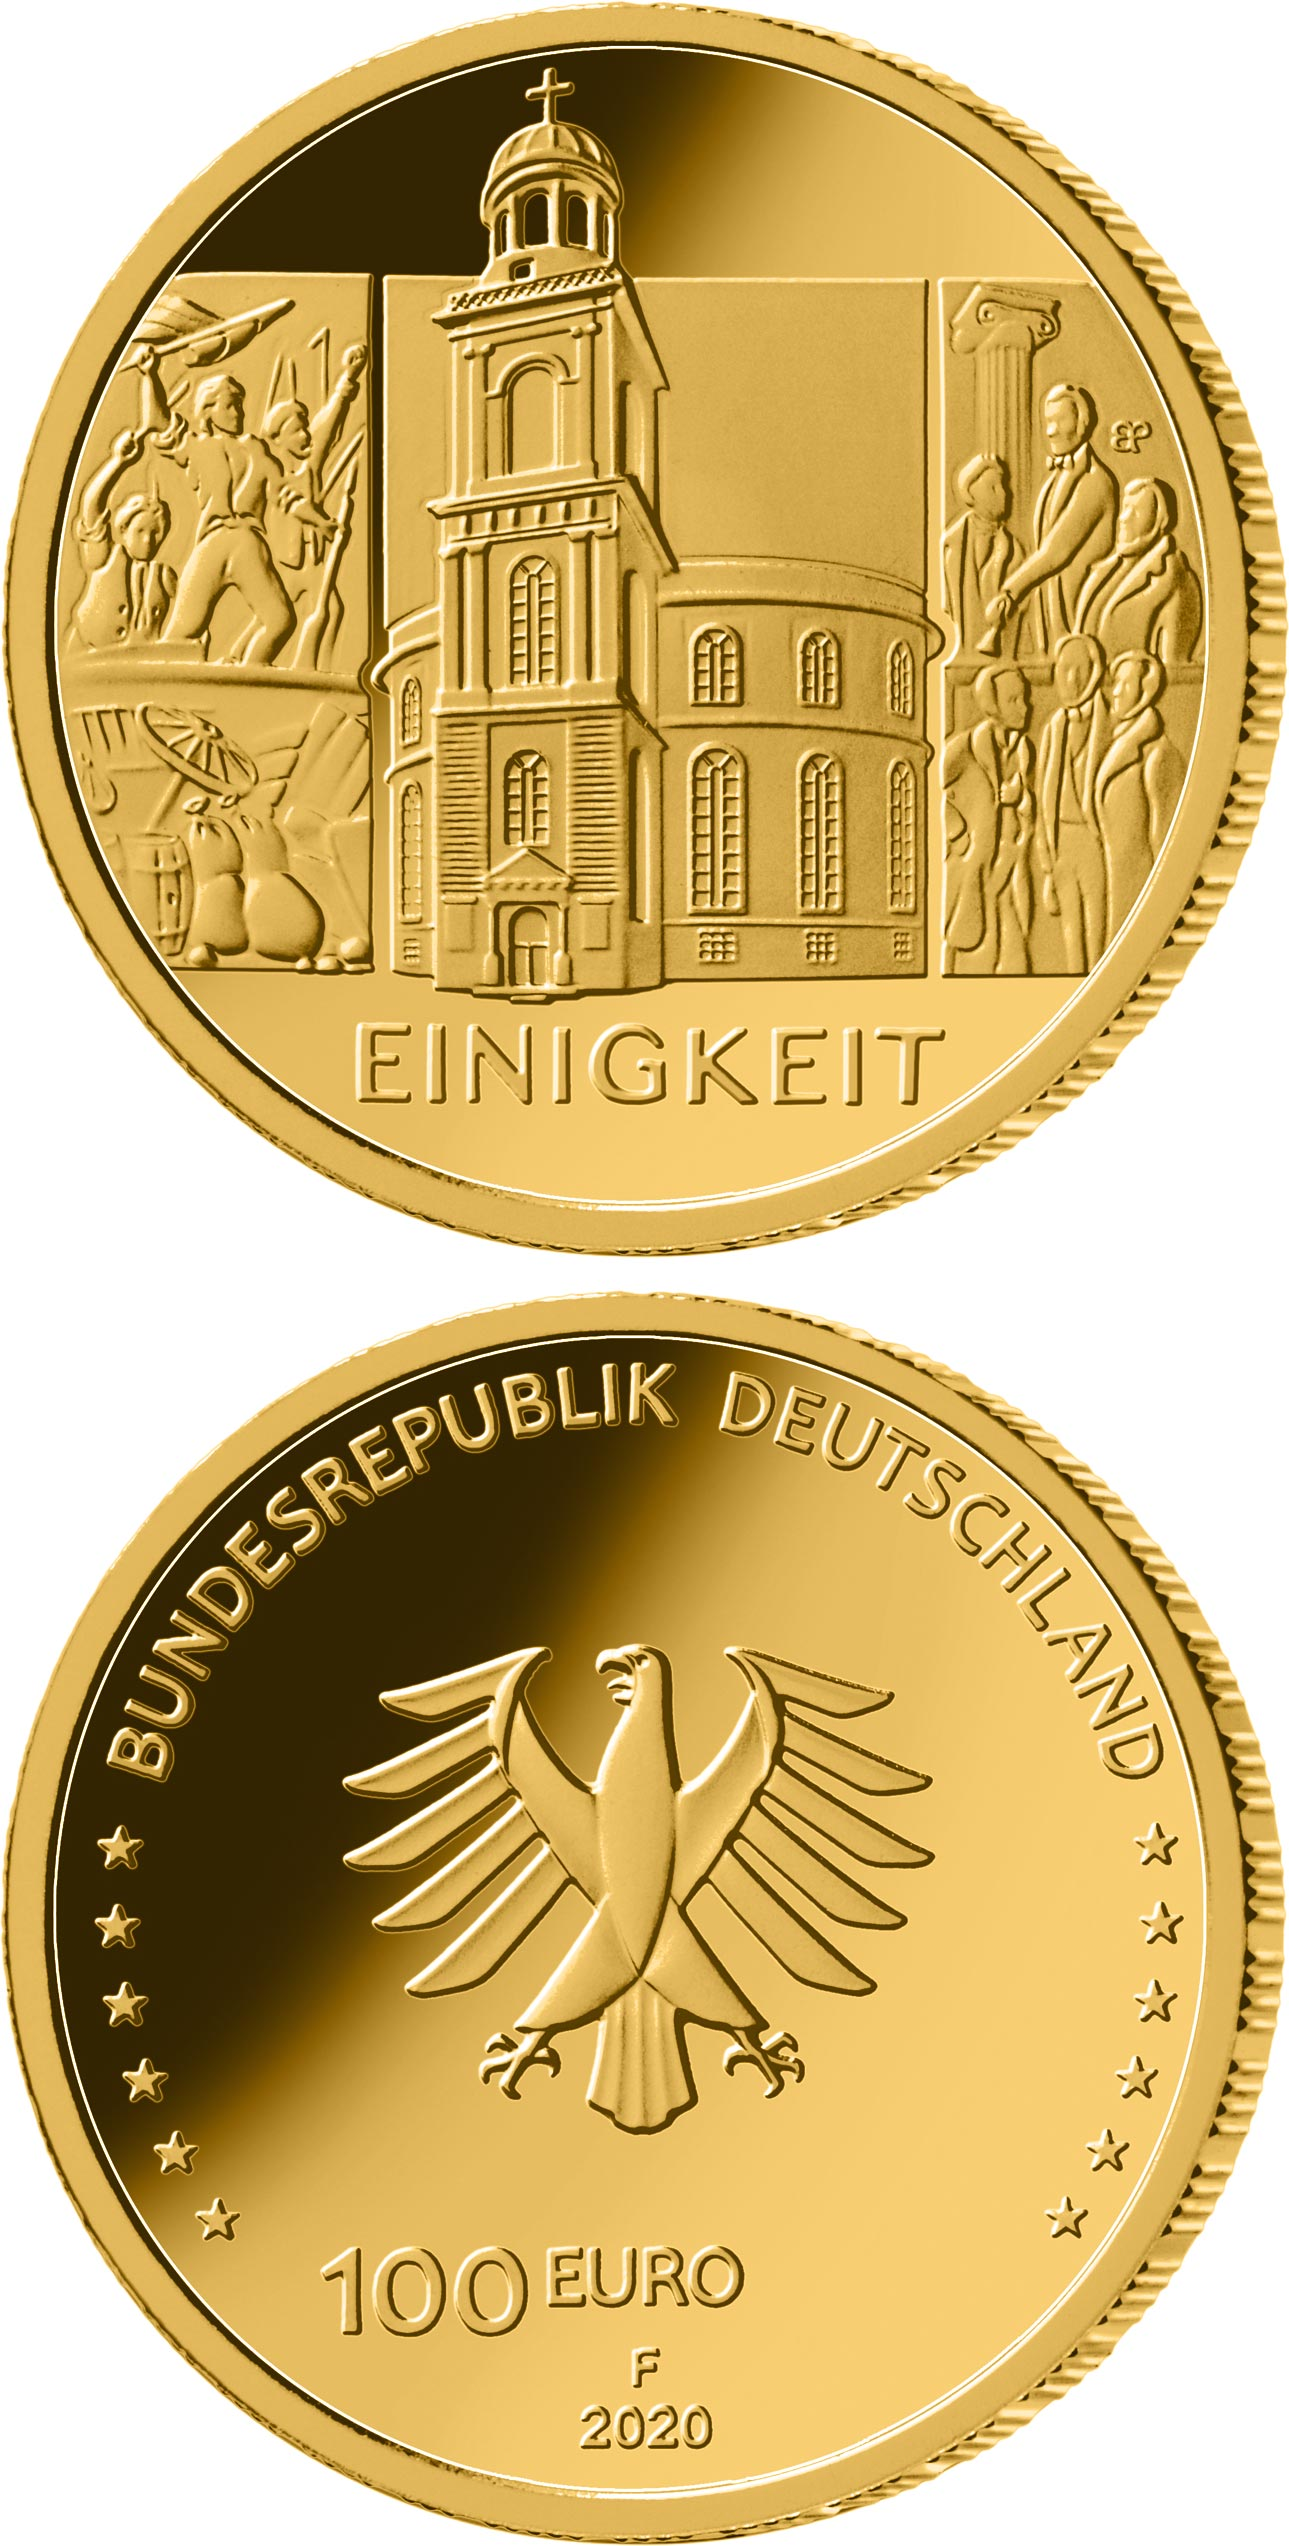 Image of 100 euro coin - The Unity - St. Paul's Church | Germany 2020.  The Gold coin is of Proof quality.